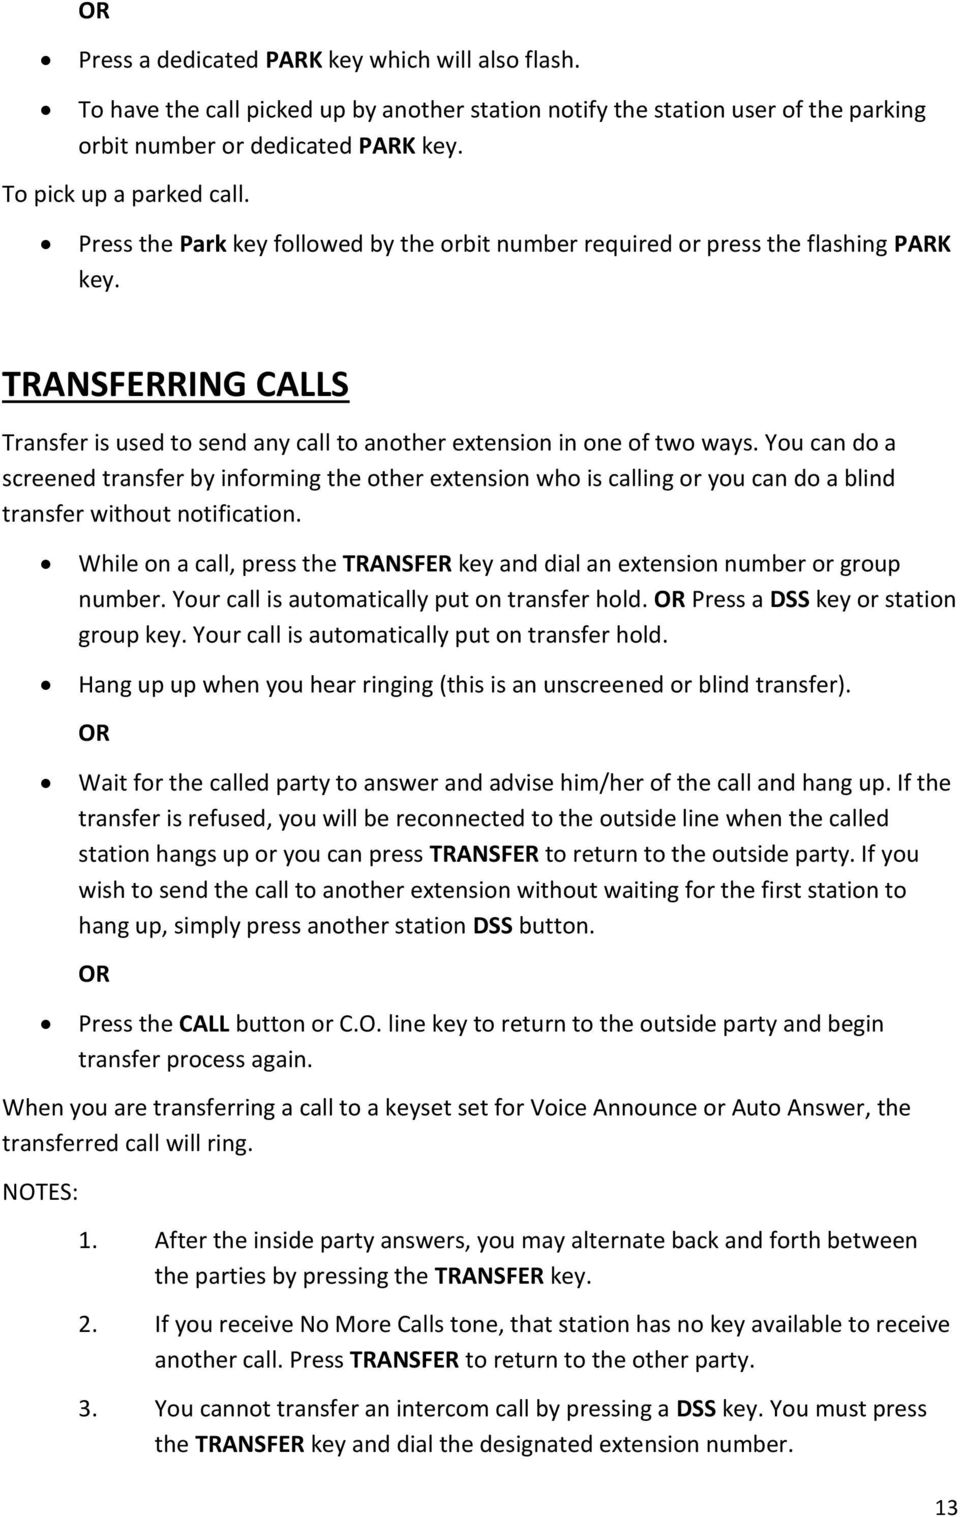 You can do a screened transfer by informing the other extension who is calling or you can do a blind transfer without notification.